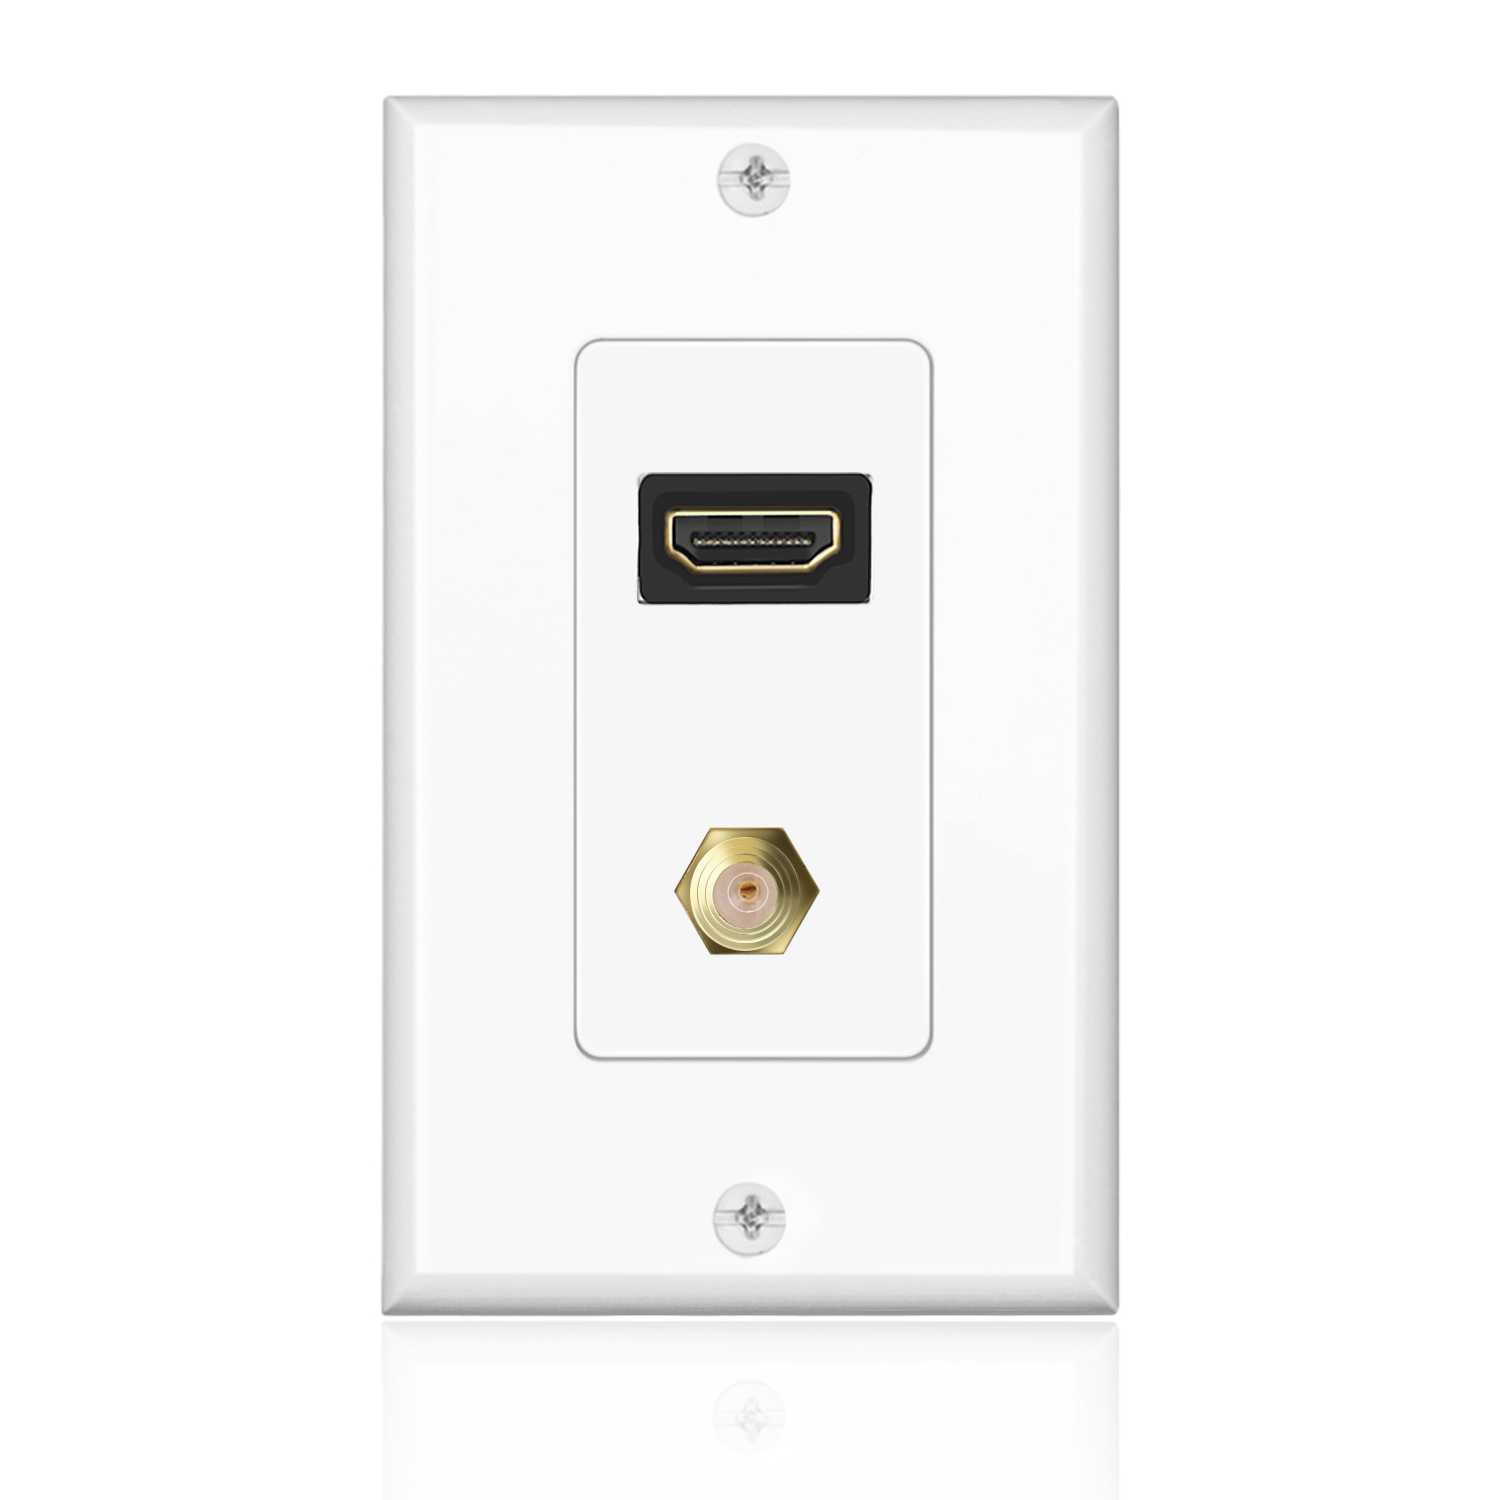 Hdmi F Connector Wall Plate Face Cover 4k P Outlet